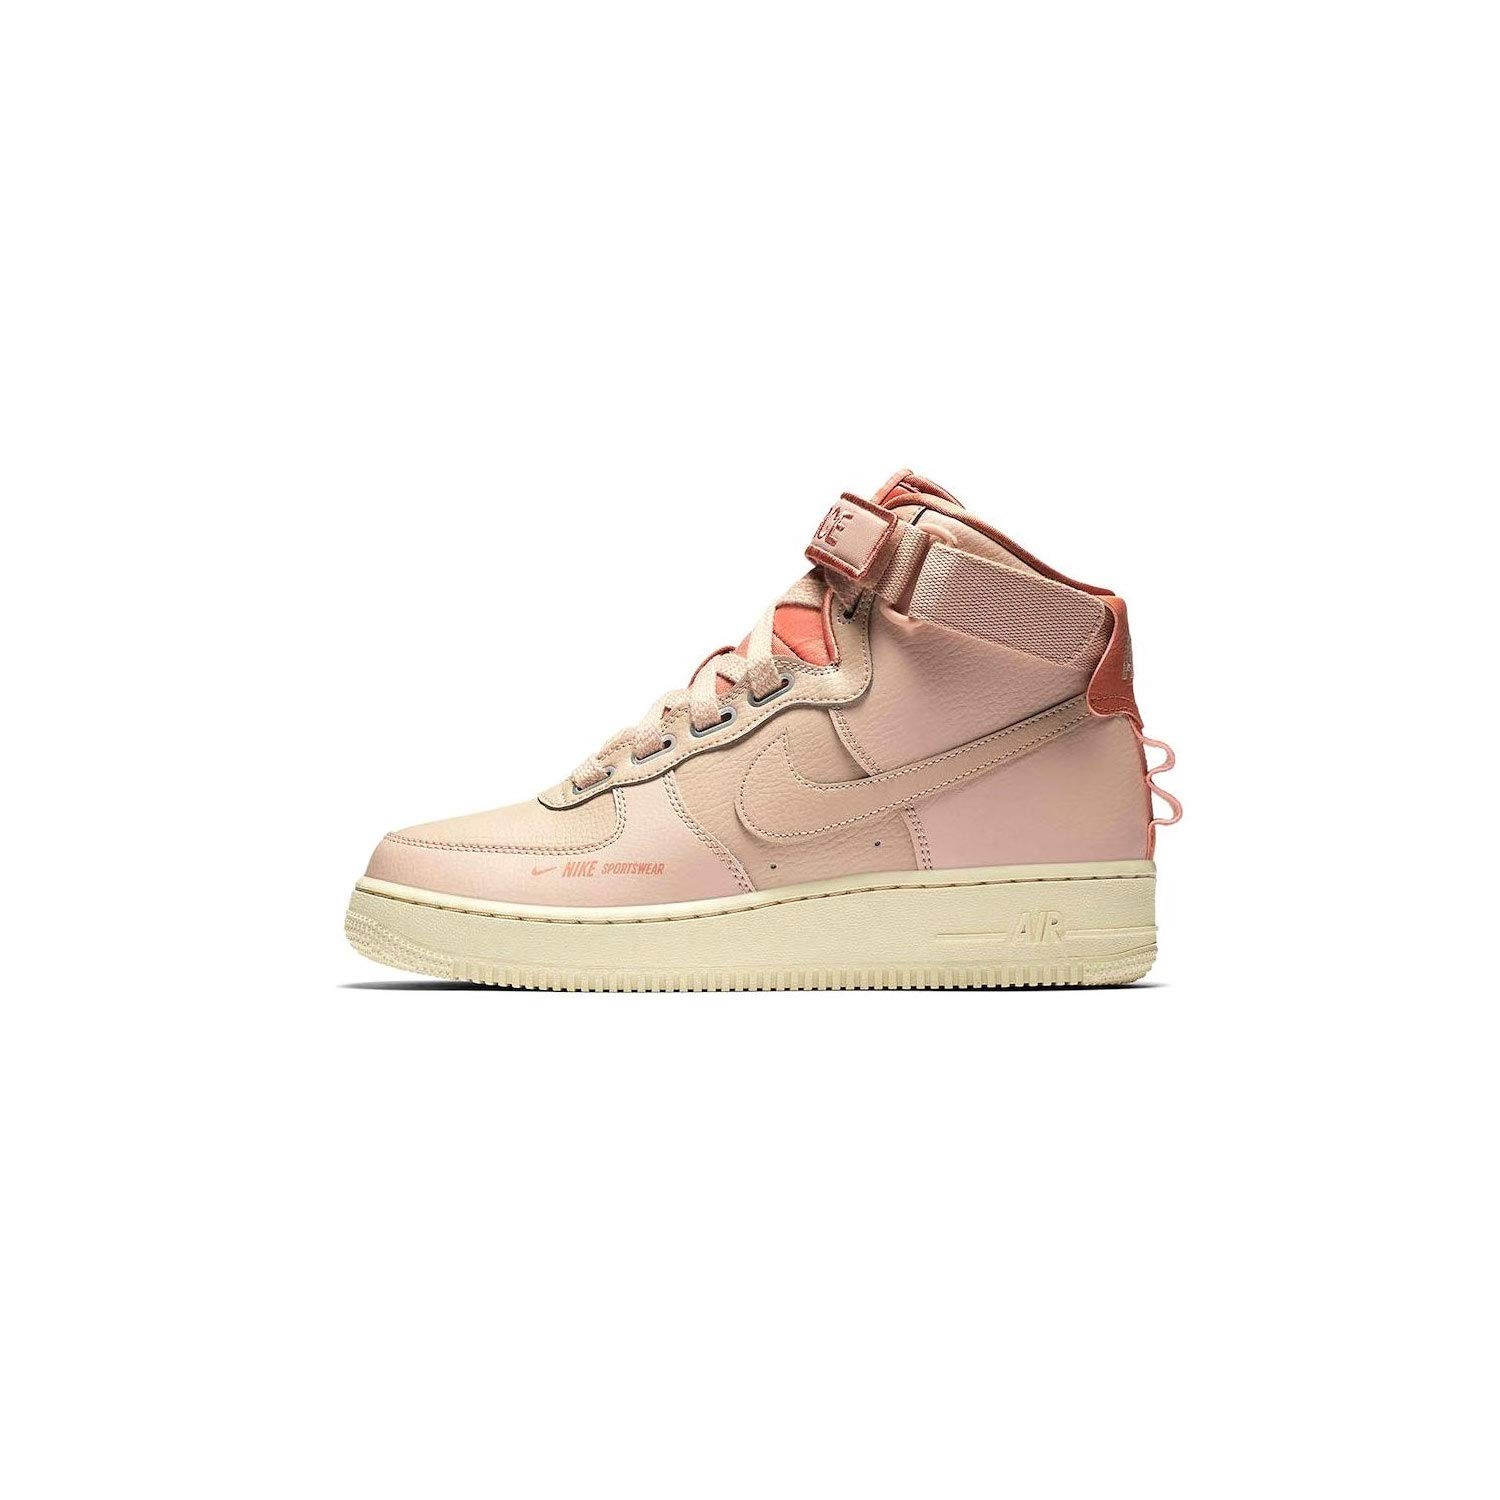 Nike Women's Air Force 1 High Utility Particle Beige